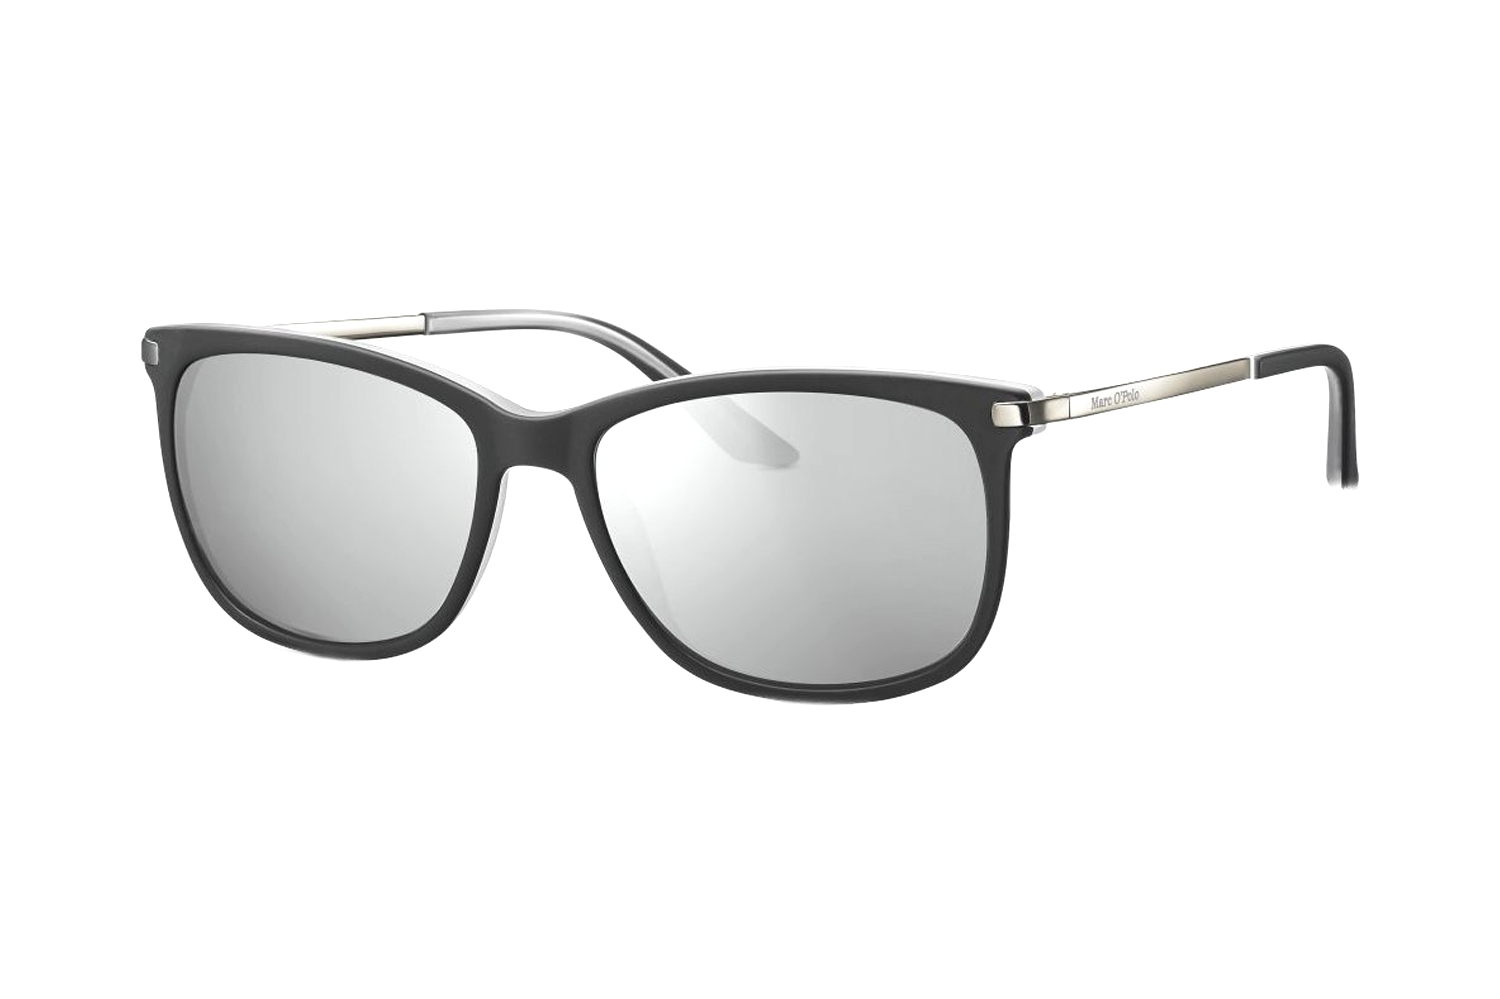 MARC O'POLO Eyewear MARC O'POLO 506117 60 dunkelhavanna vgXuI